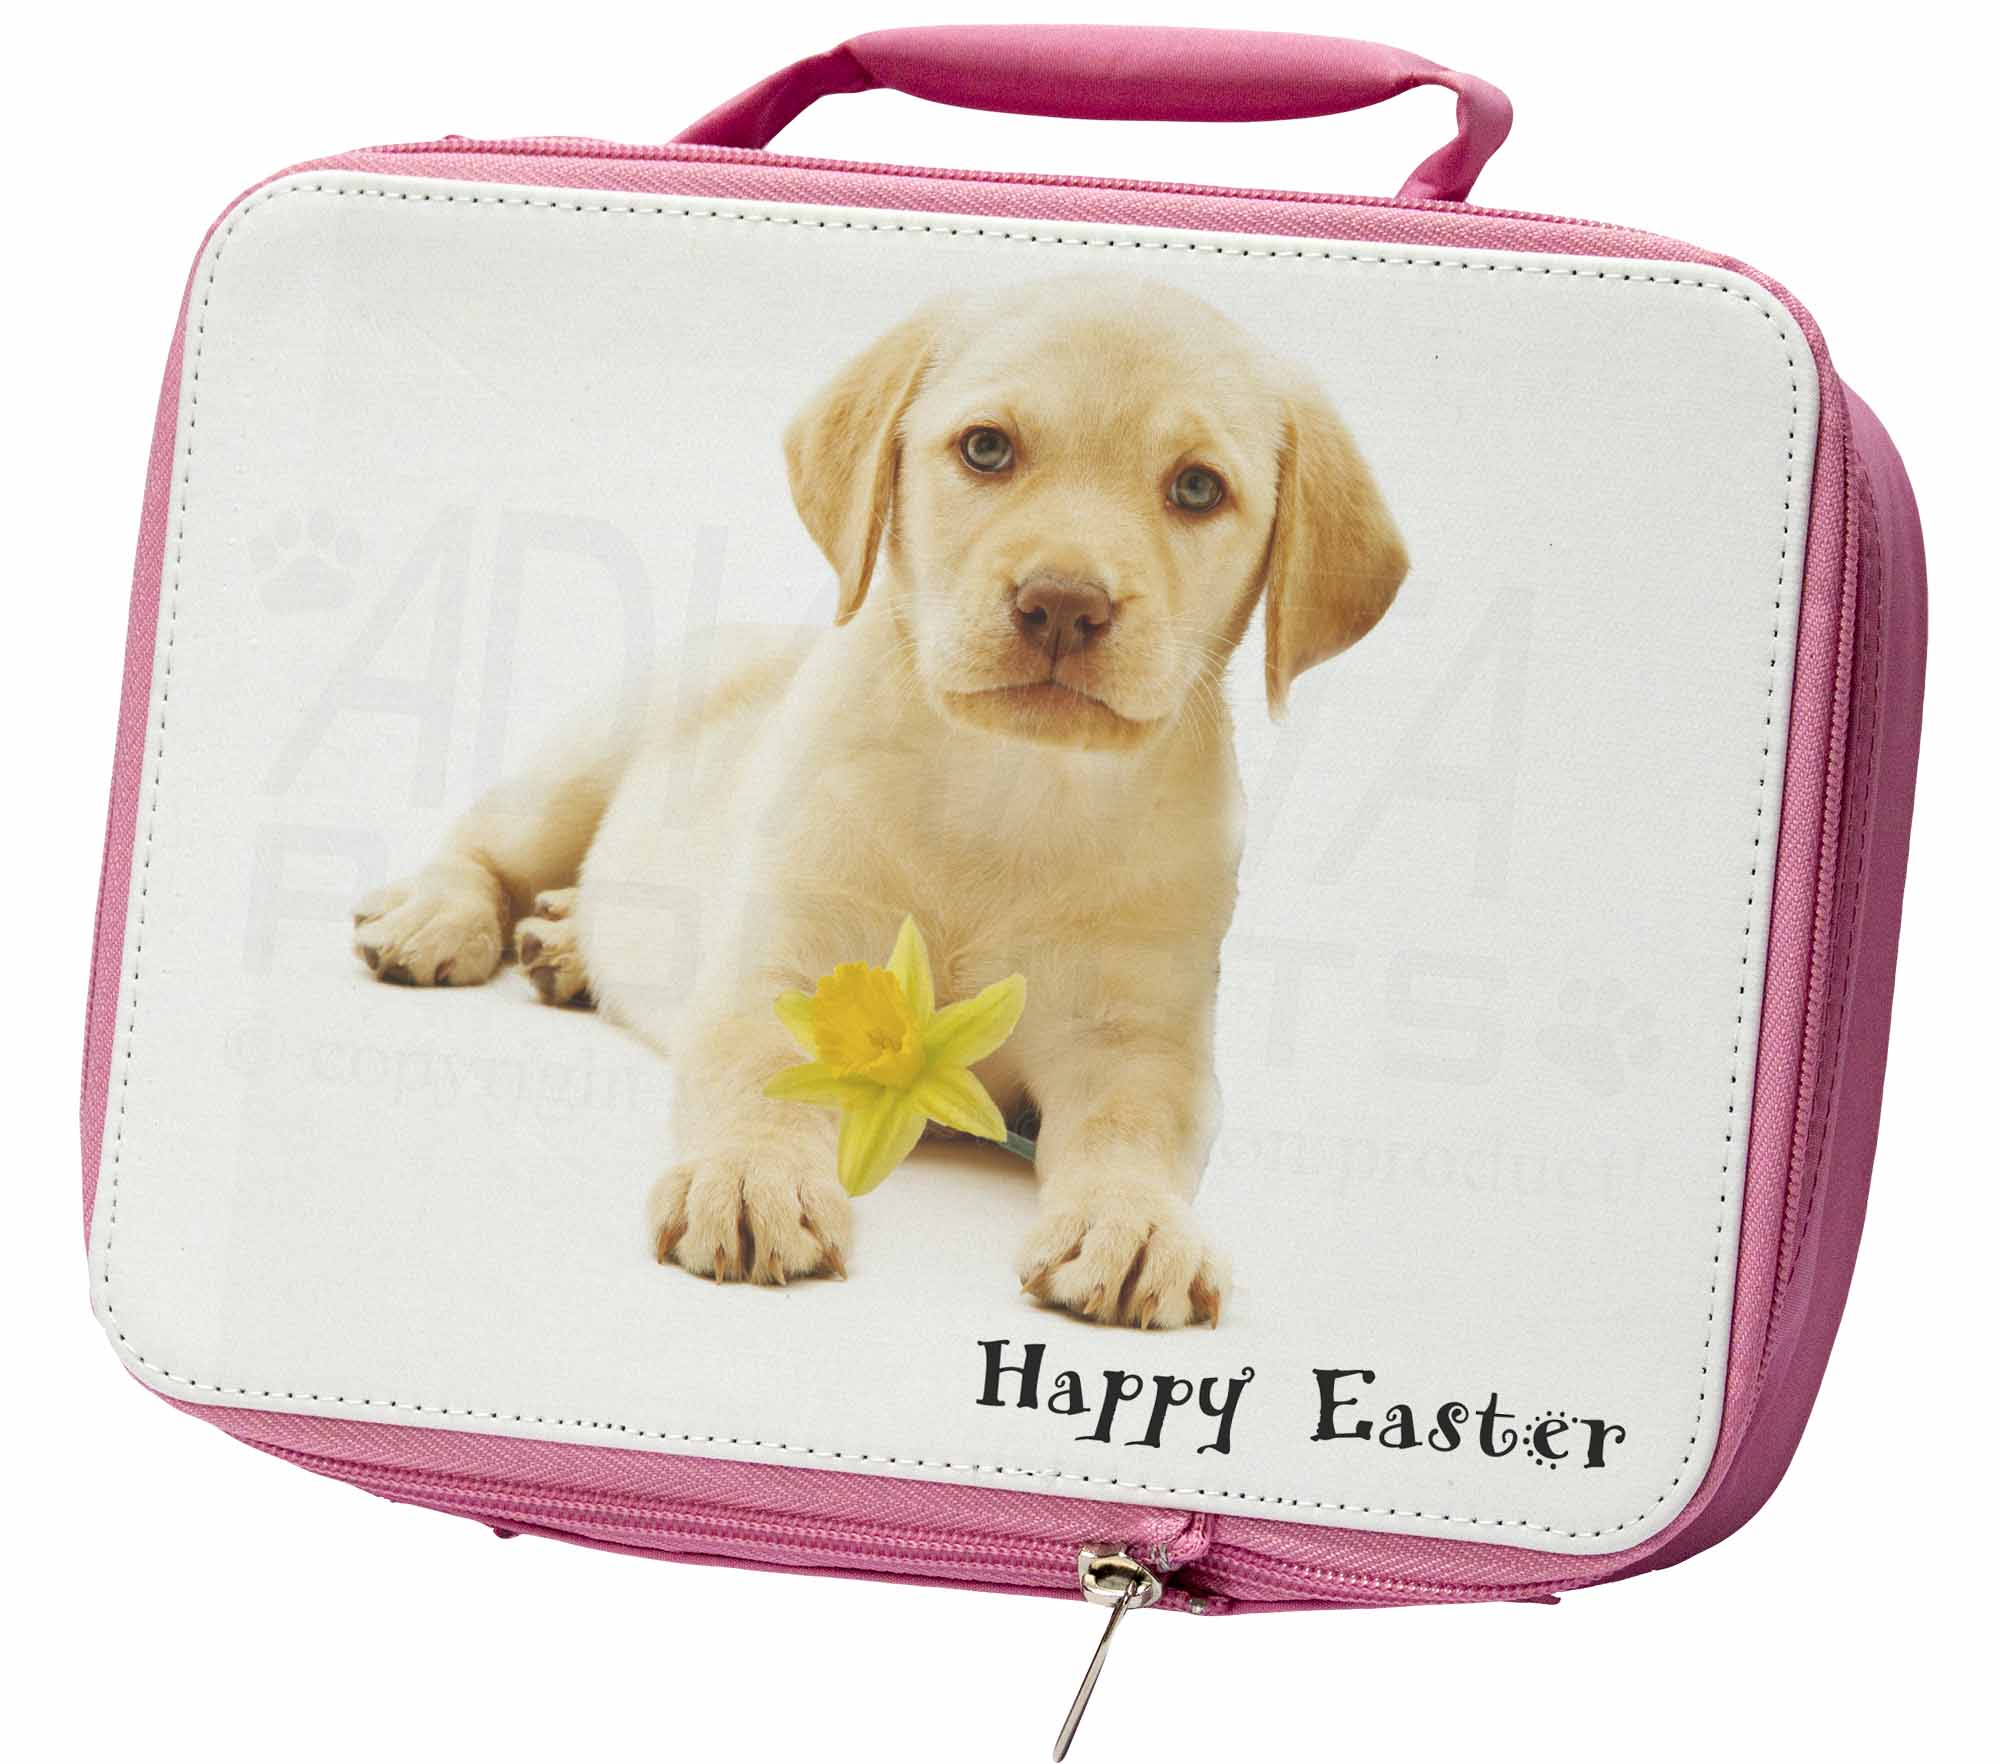 'Happy Easter' Goldie Puppy Insulated Pink School Lunch Box Bag, ADL4DA1LBP